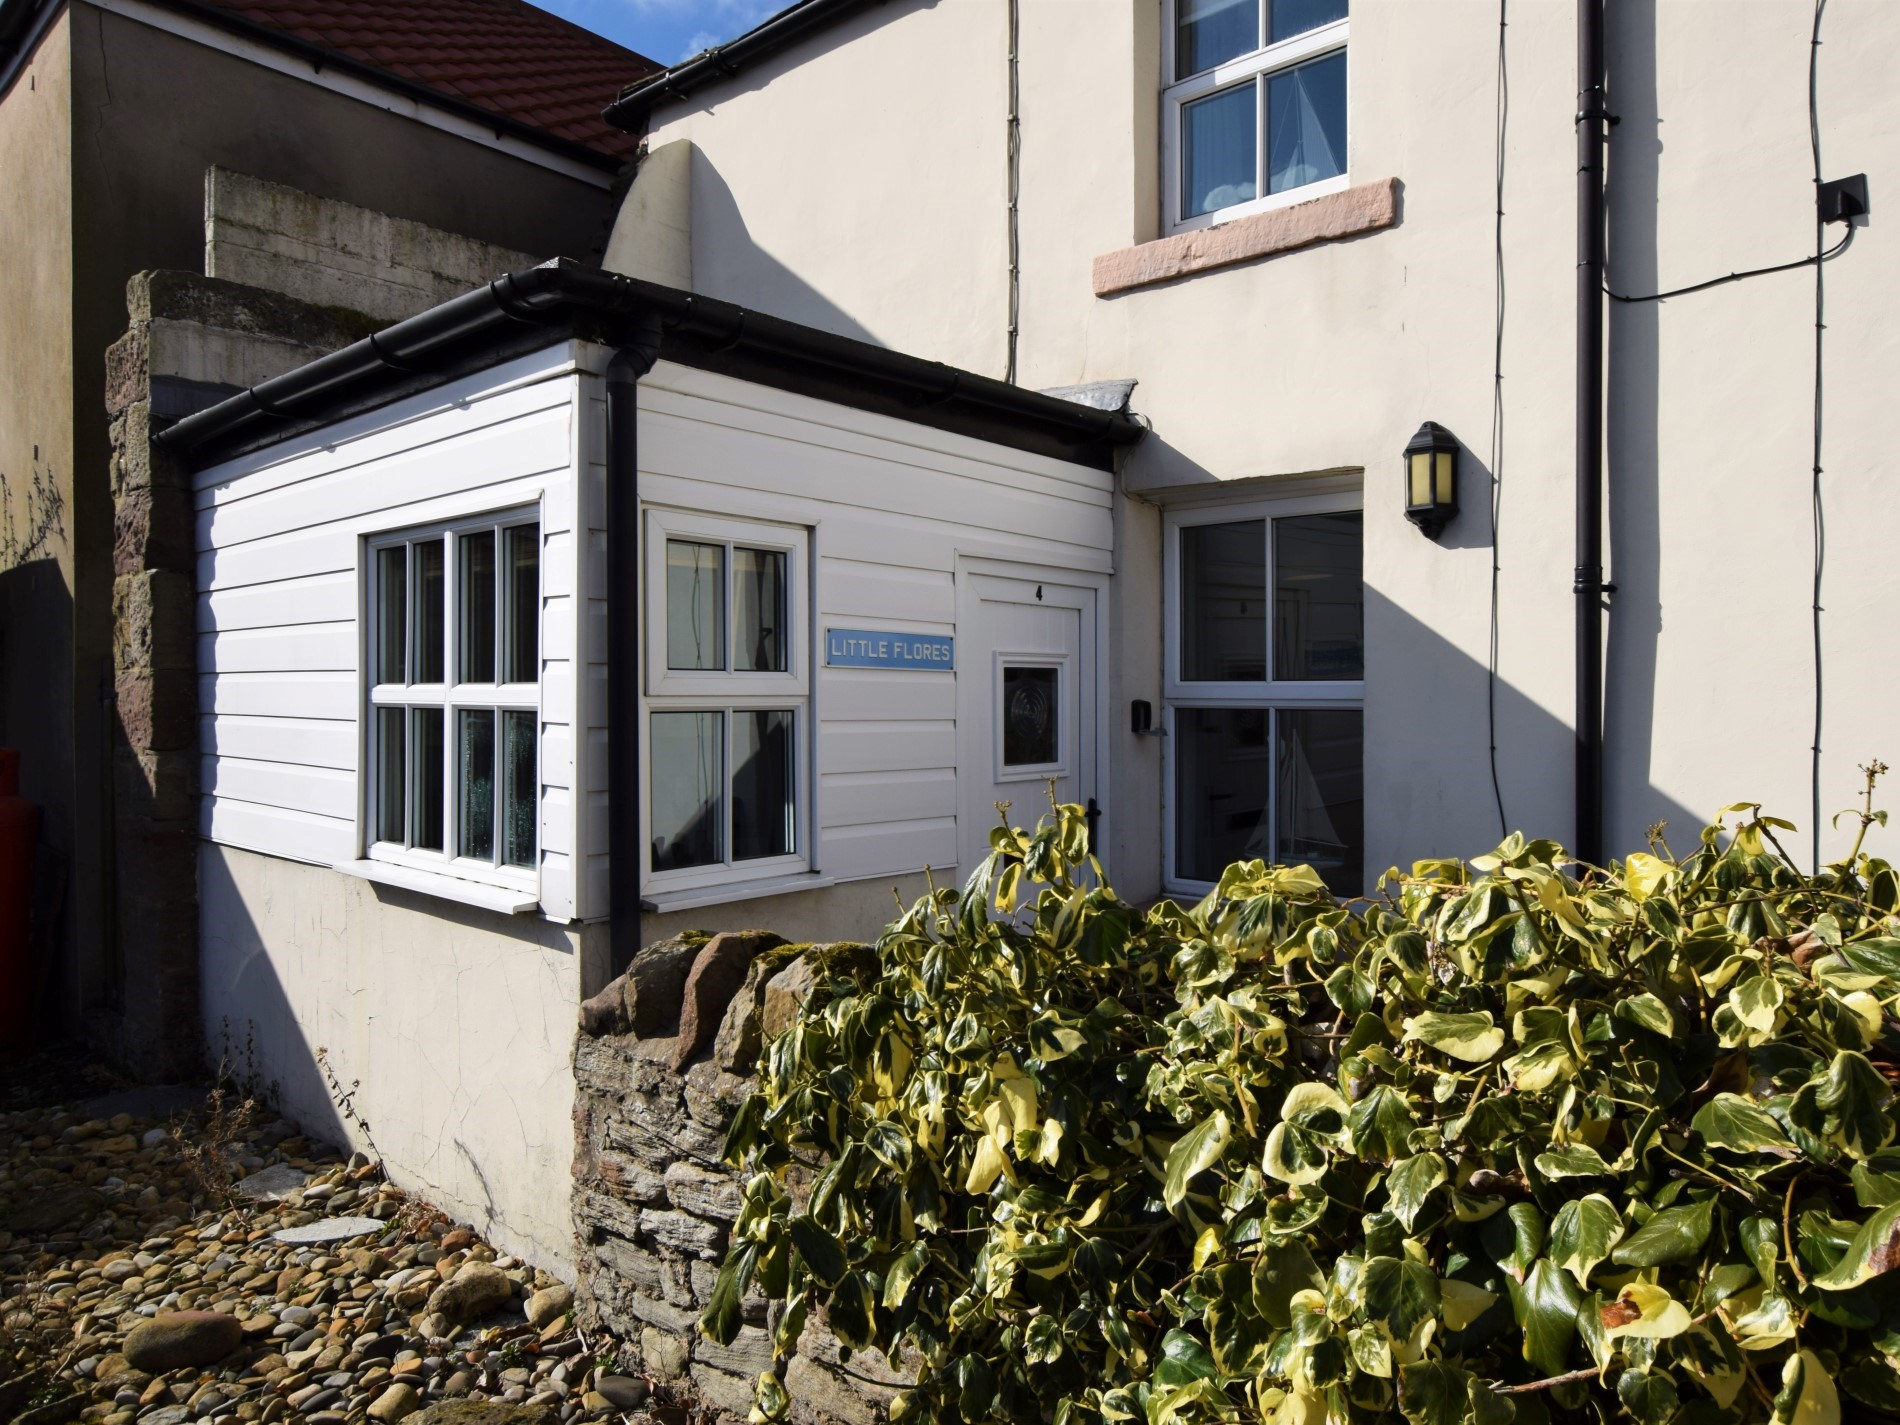 1 Bedroom Cottage in Seahouses, Northumbria